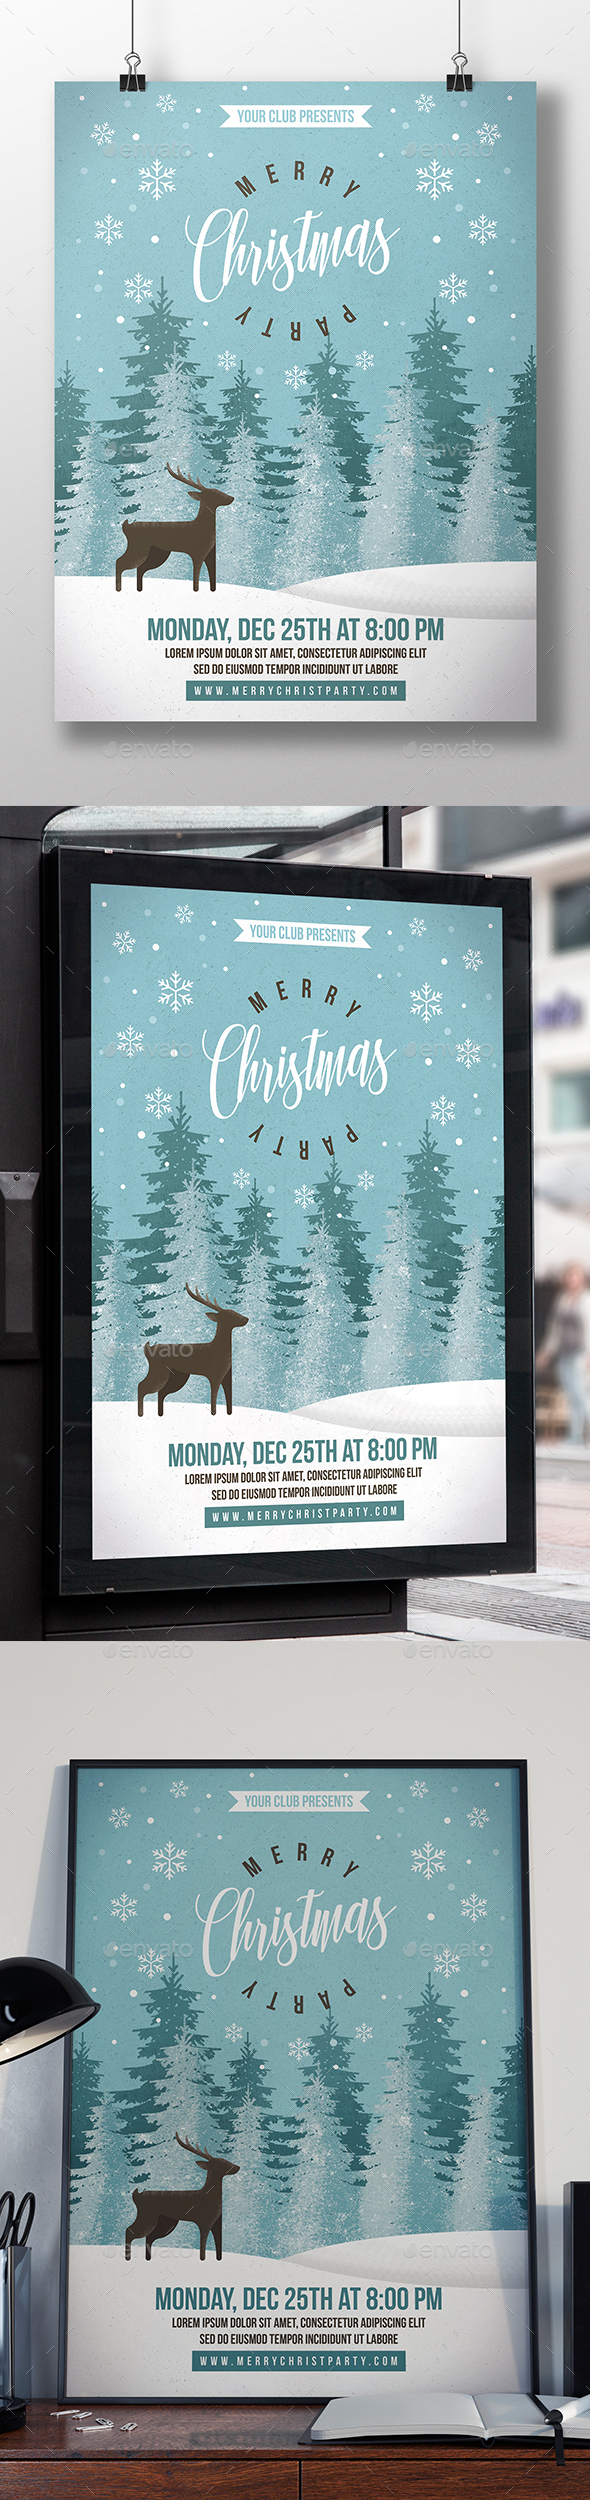 GraphicRiver Christmas Party Event Flyer 20987969